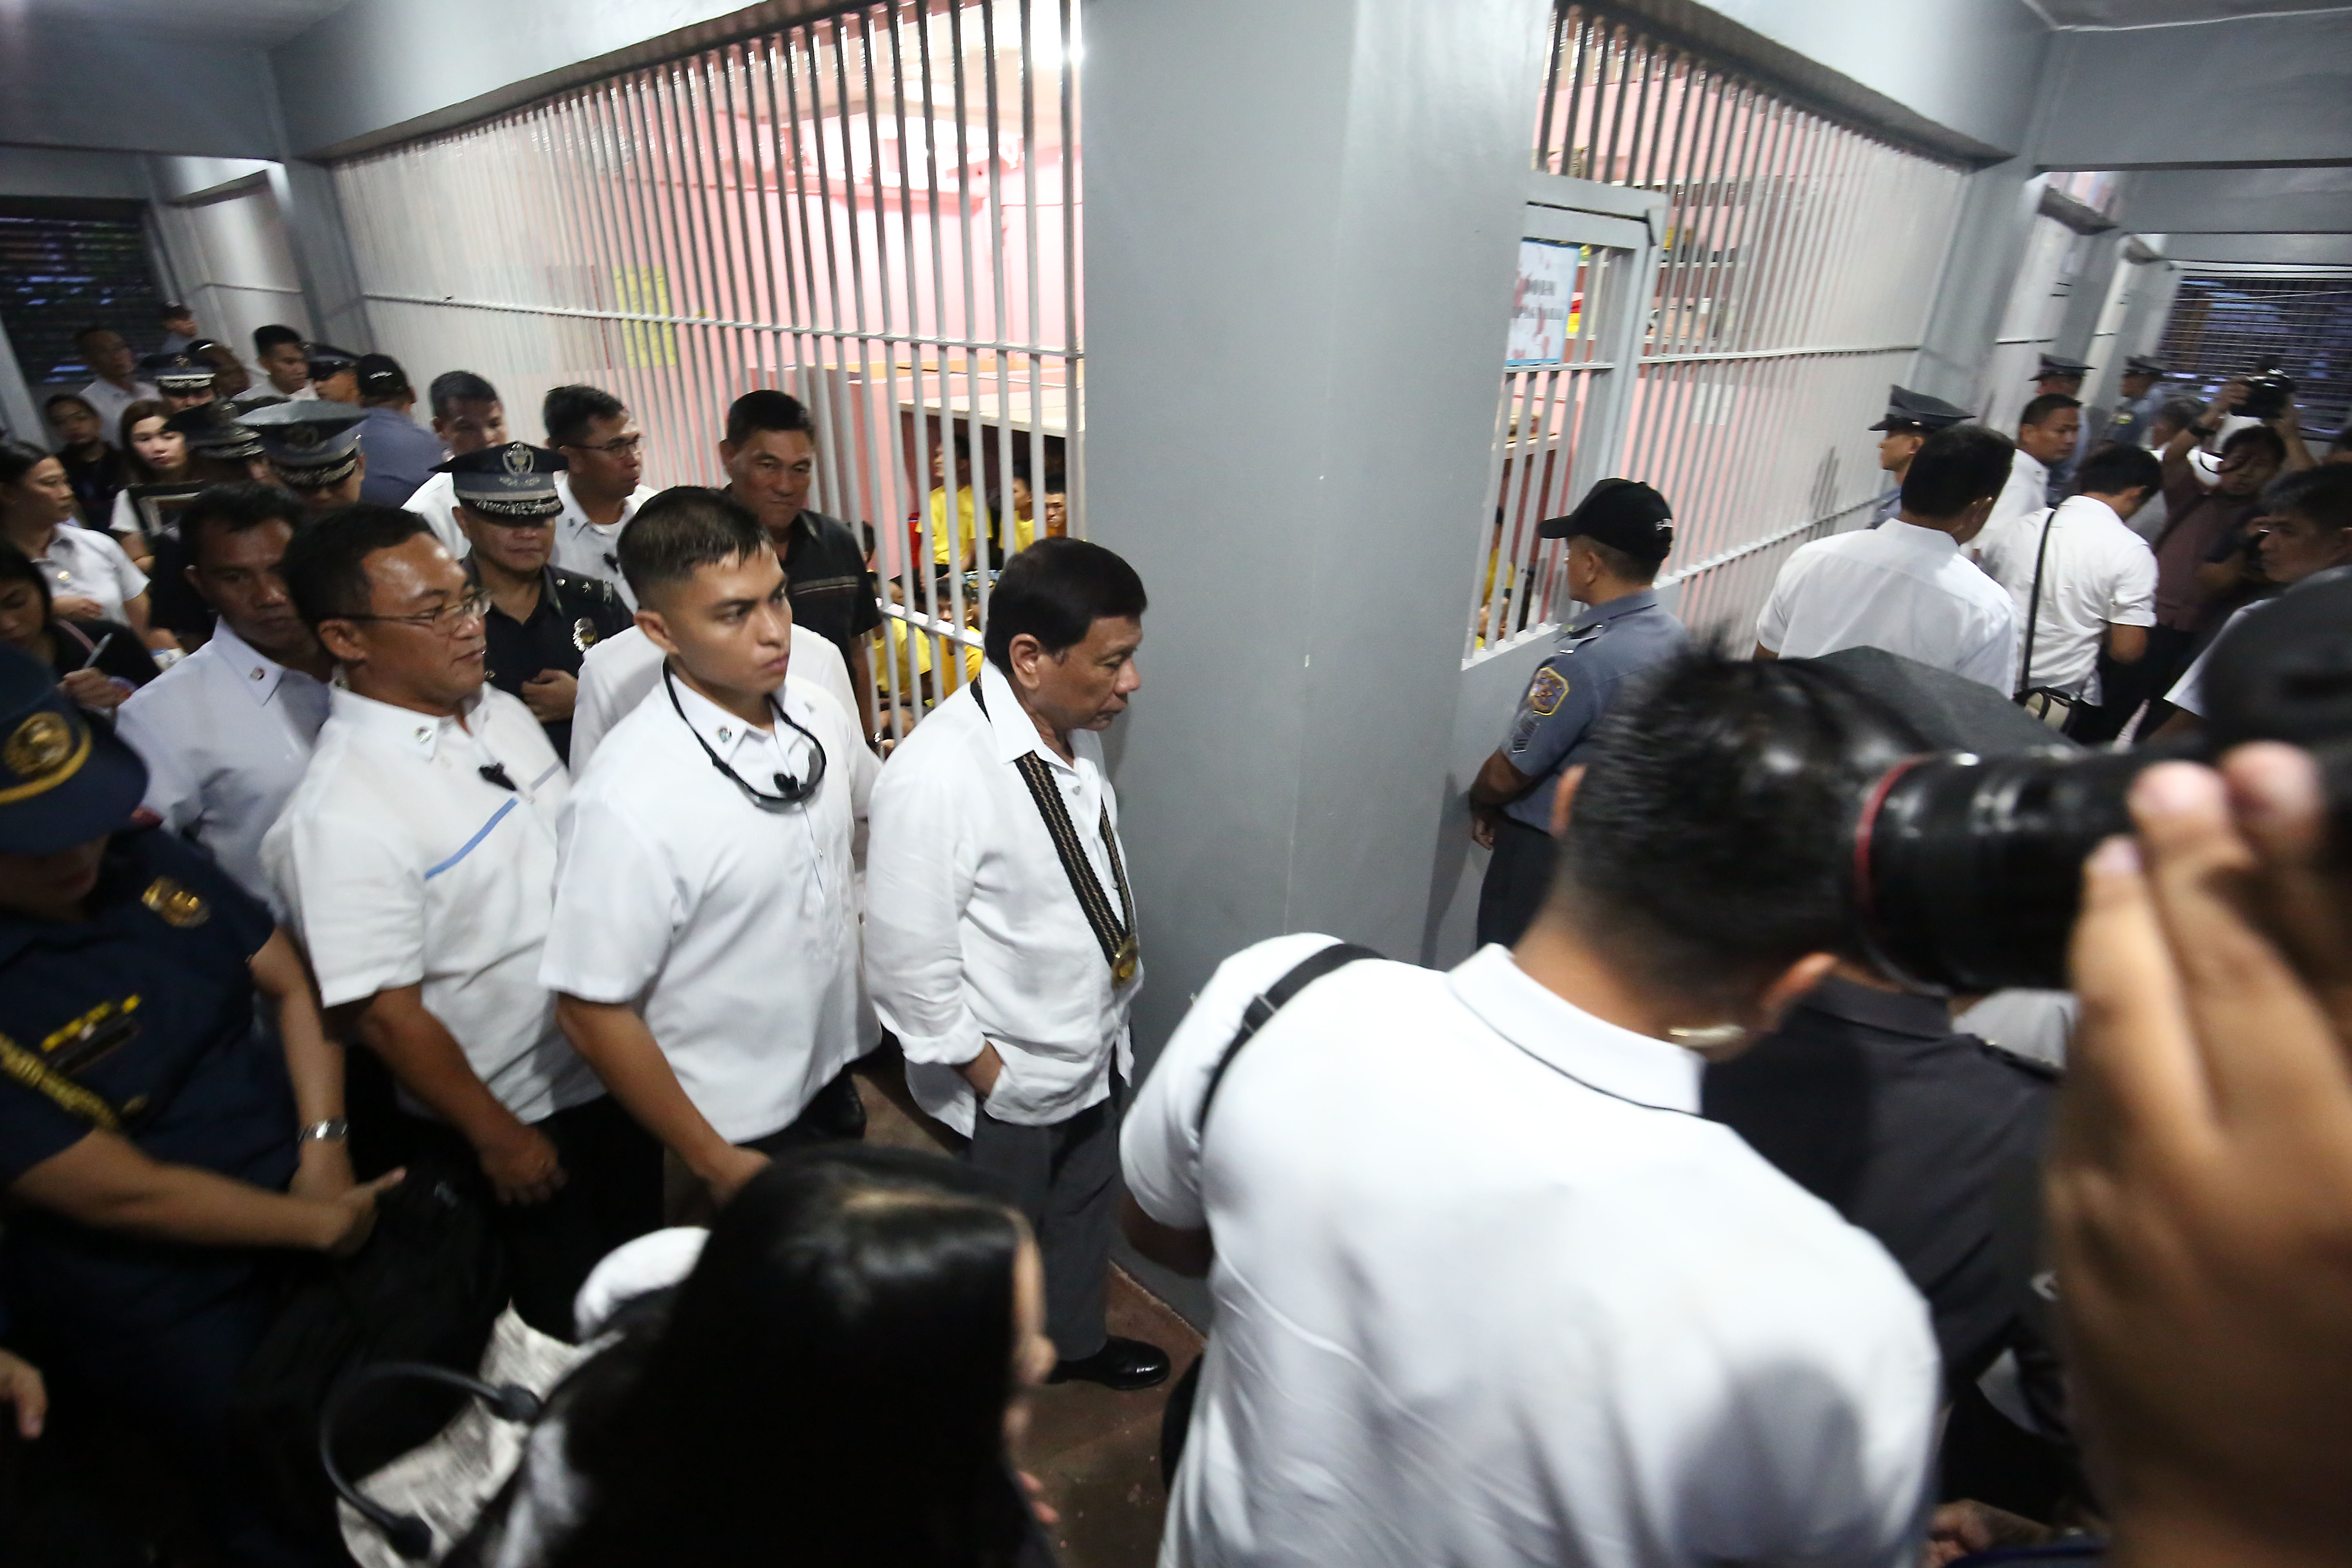 INSPECTING JAILS. President Rodrigo Duterte is given a tour inside the detention facility of the BJMP at the Camp Bagong Diwa in Taguig City on October 18, 2017. Photo by Ben Nabong/Rappler